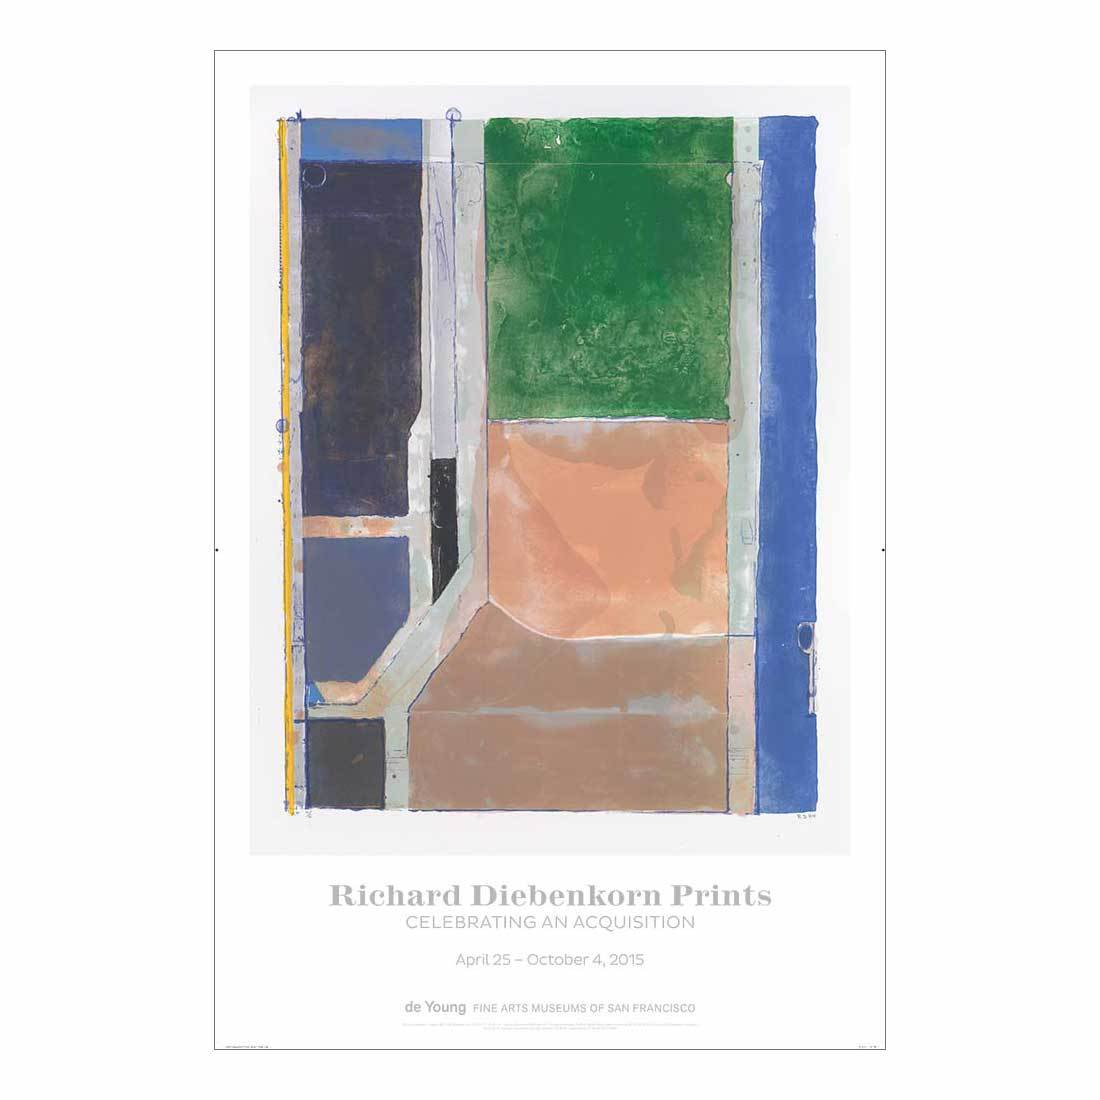 Richard Diebenkorn Prints: Celebrating an Acquisition Exhibition Poster